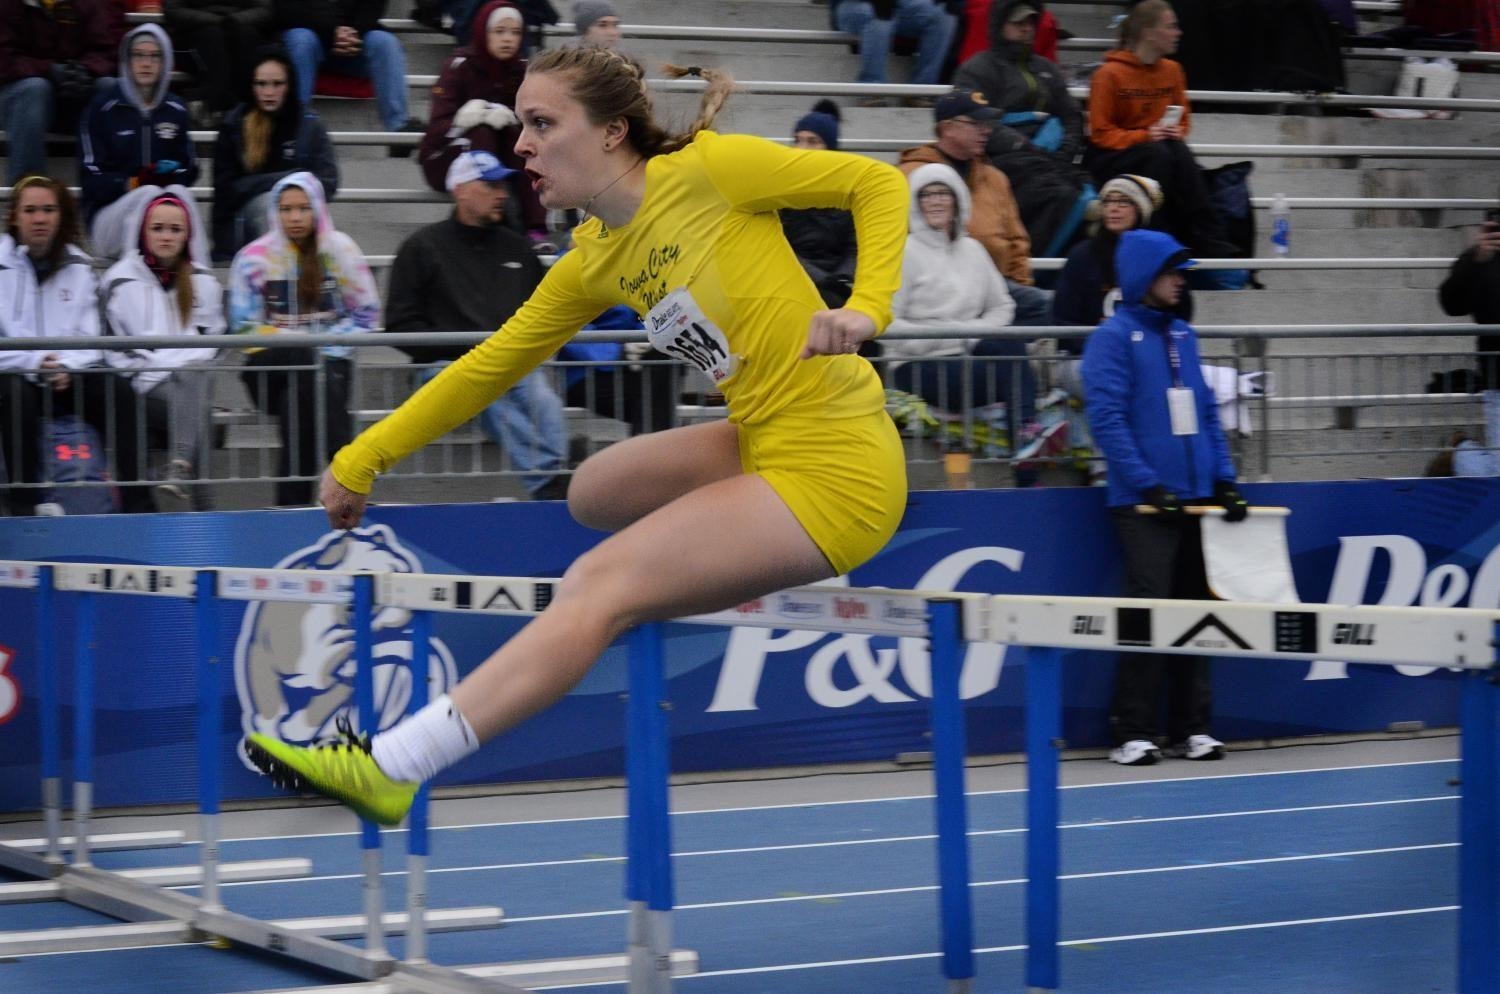 Peyton Steva '19 jumps over a hurdle during the girls shuttle hurdle relay on Saturday, May 29 at the Drake Relays. The girls placed second in the event.